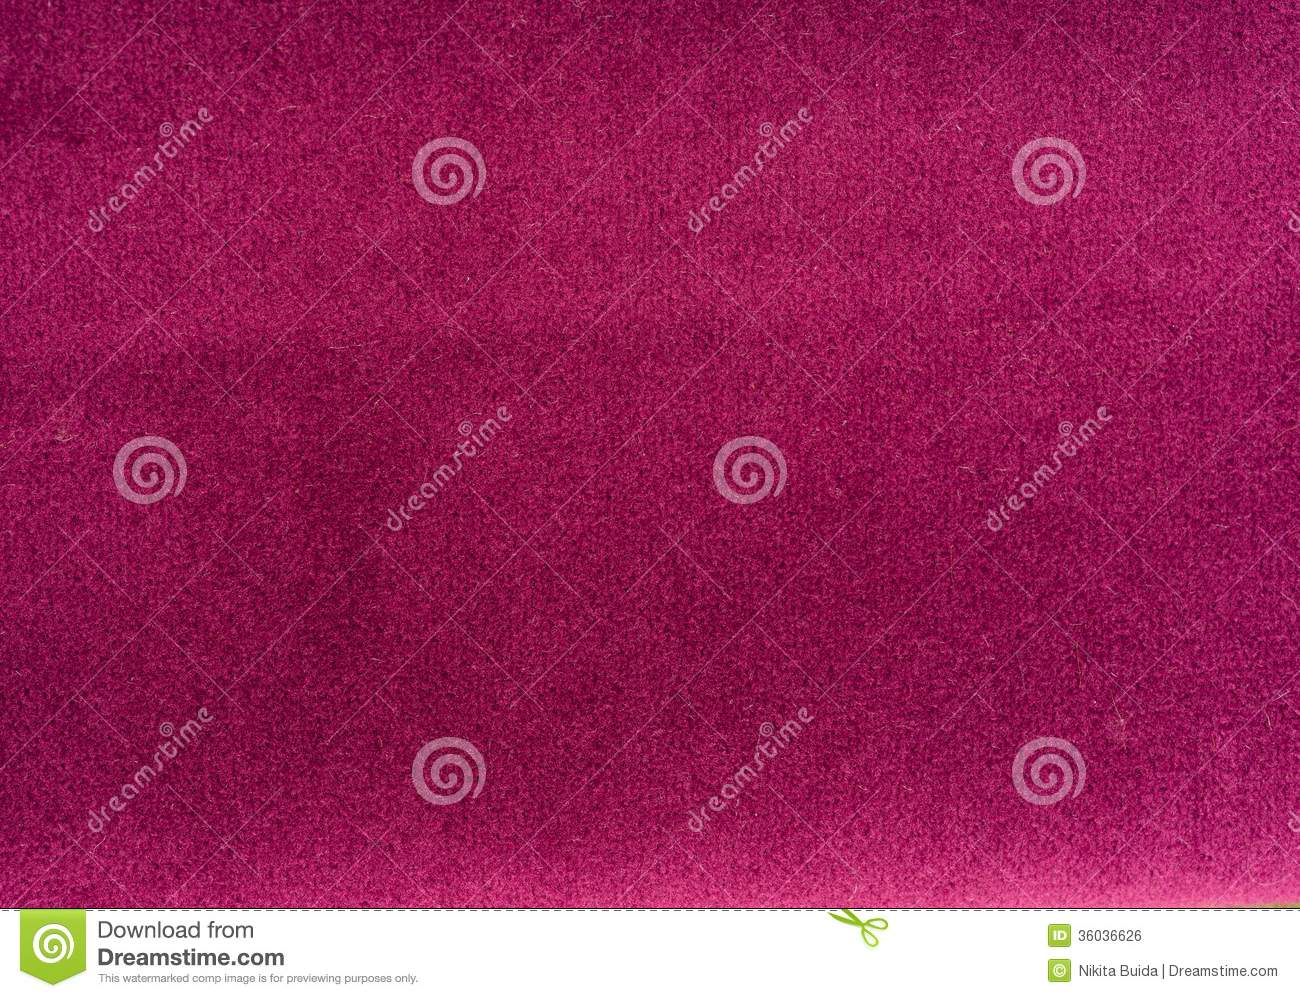 Plain Color Fabric Texture Background Royalty Free Stock Image ...